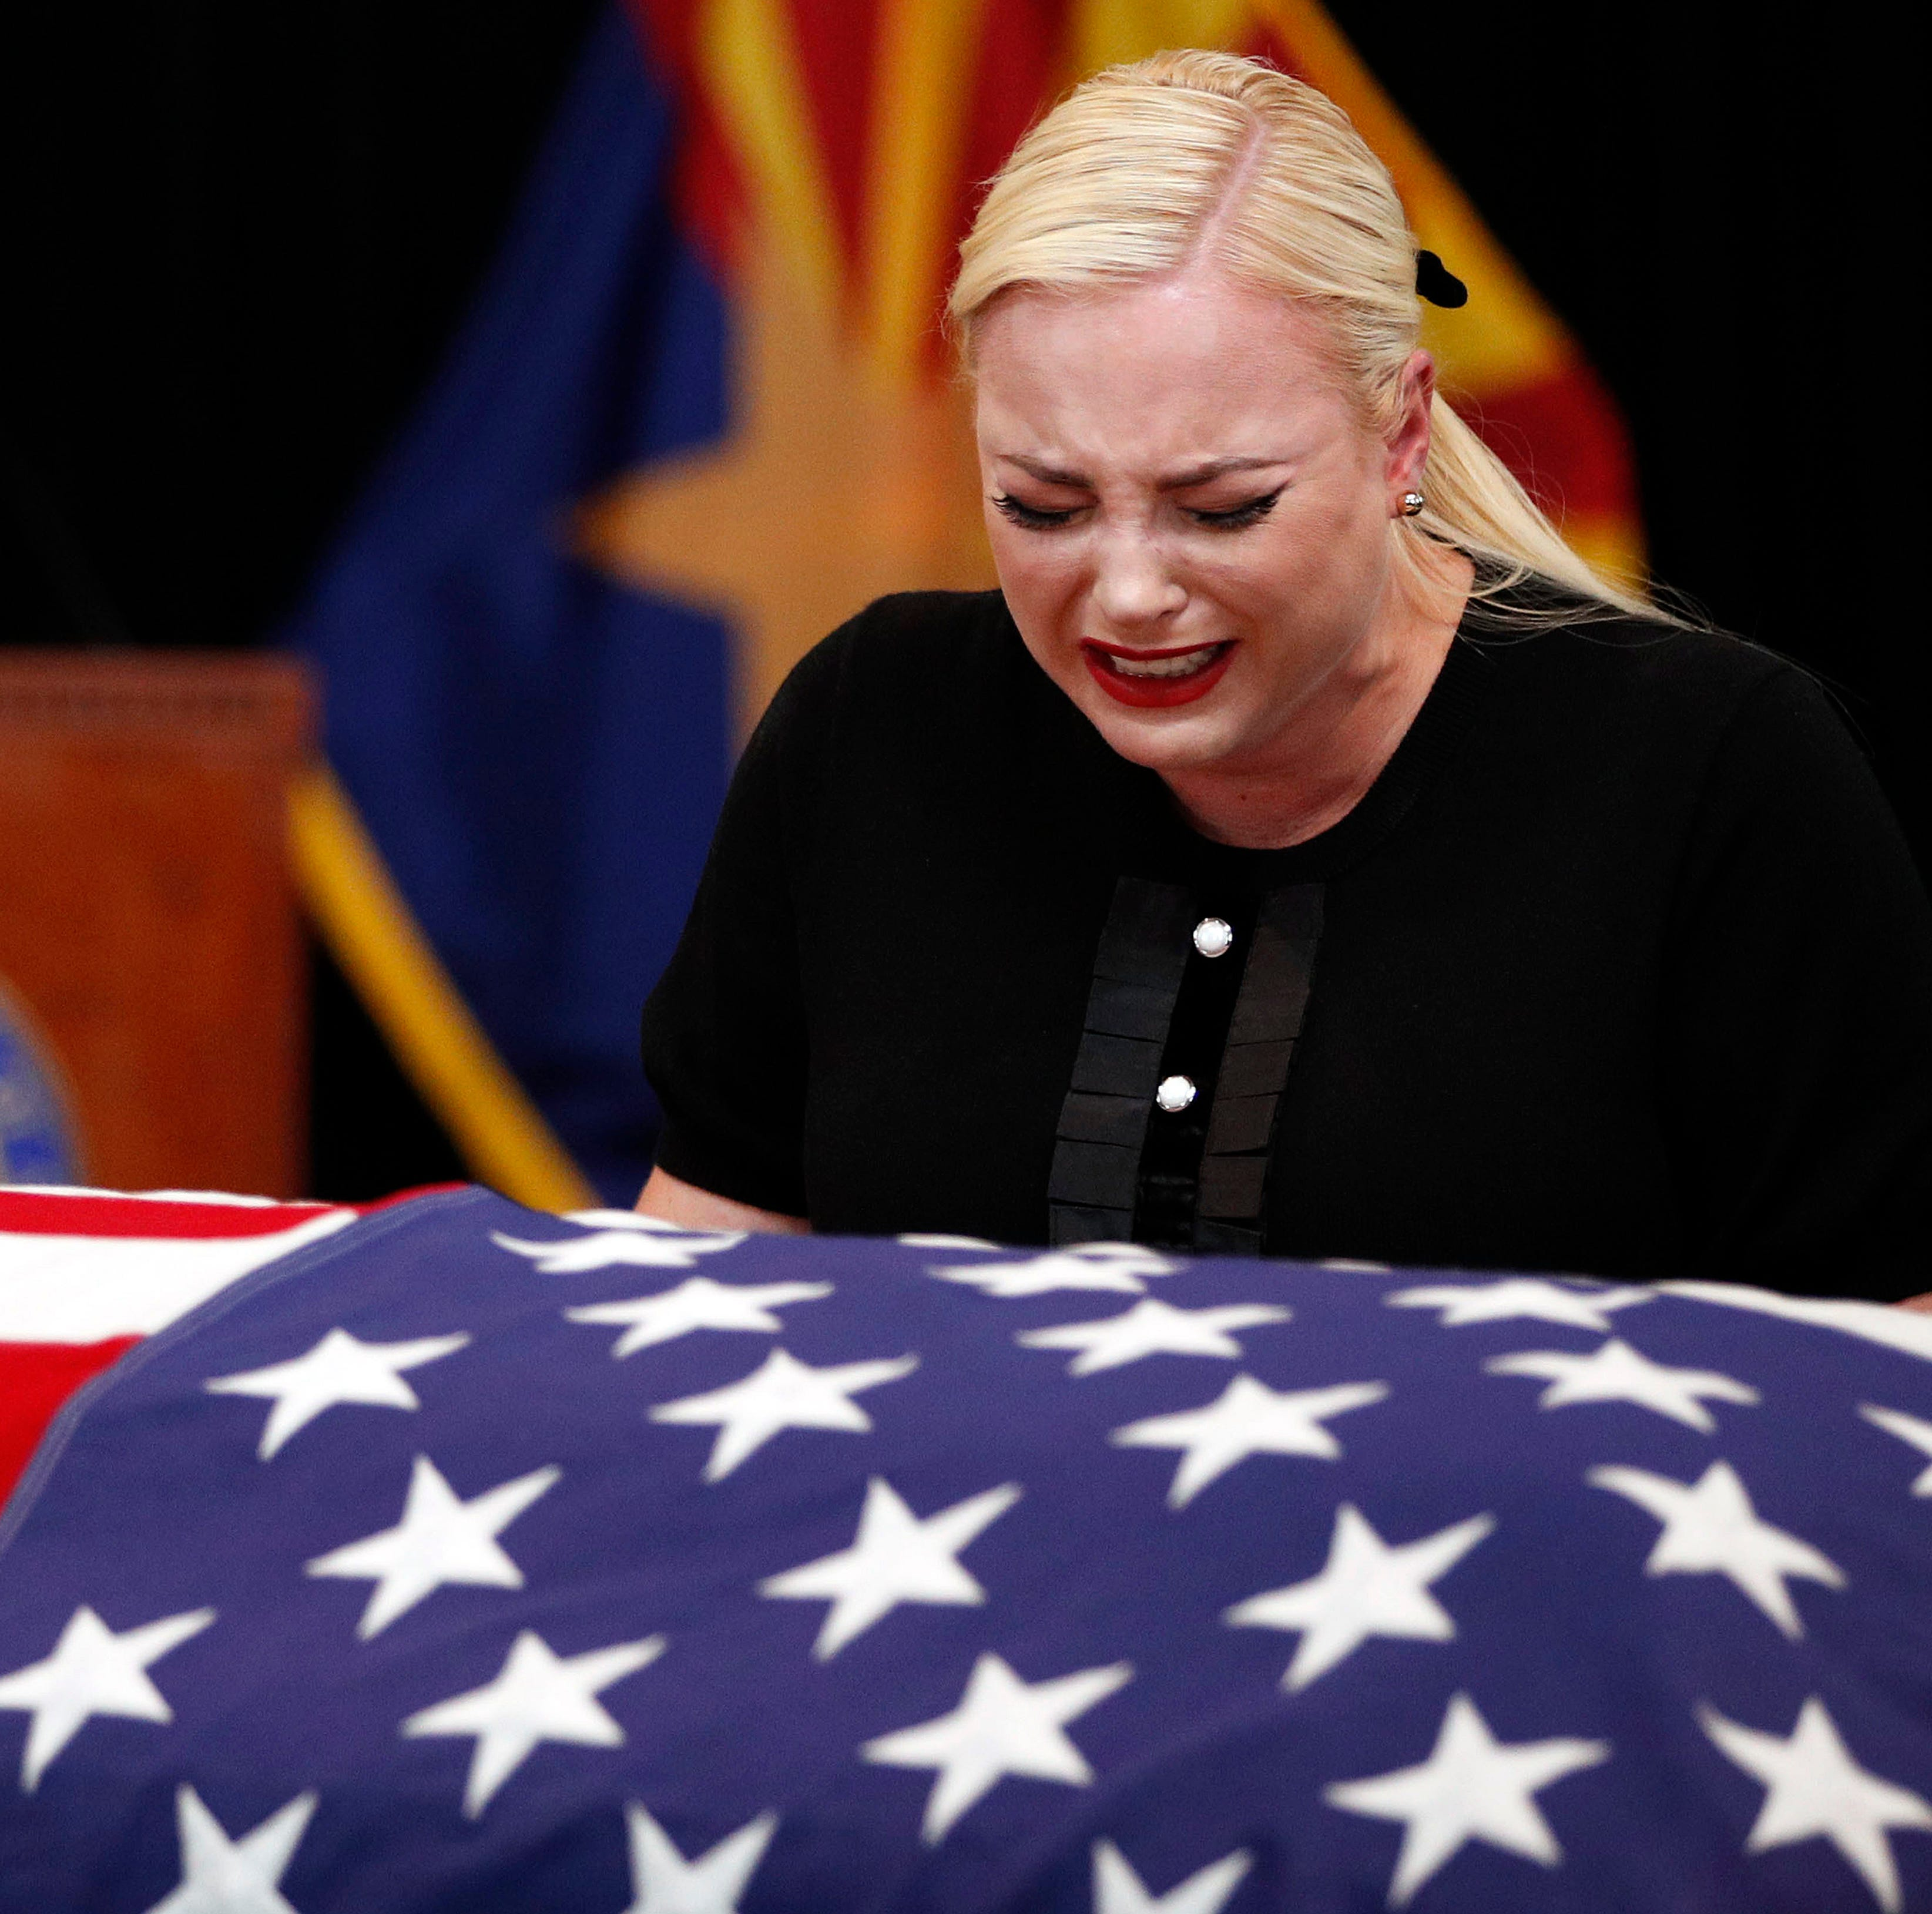 Meghan McCain, daughter of, Sen. John McCain, R-Ariz. cries at the casket of her father during a memorial service at the Arizona Capitol on Weds. Aug. 29, 2018, in Phoenix.